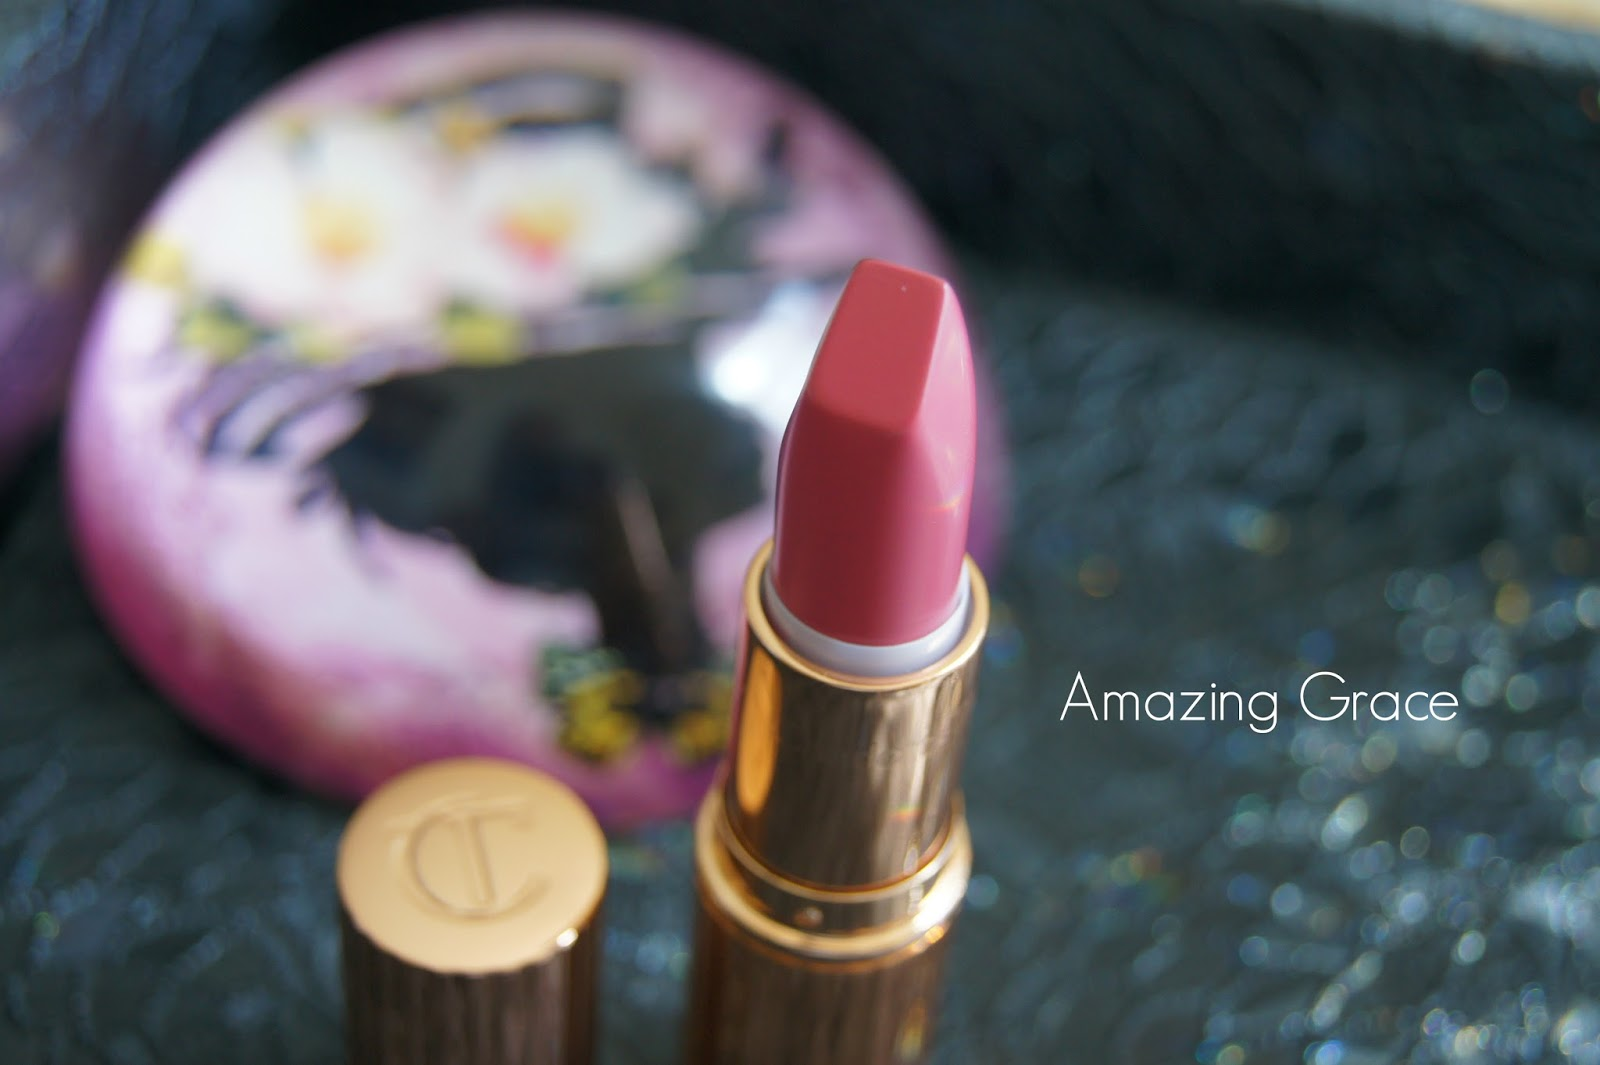 Charlotte Tilbury Matte Revolution lipstick review-Amazing Grace